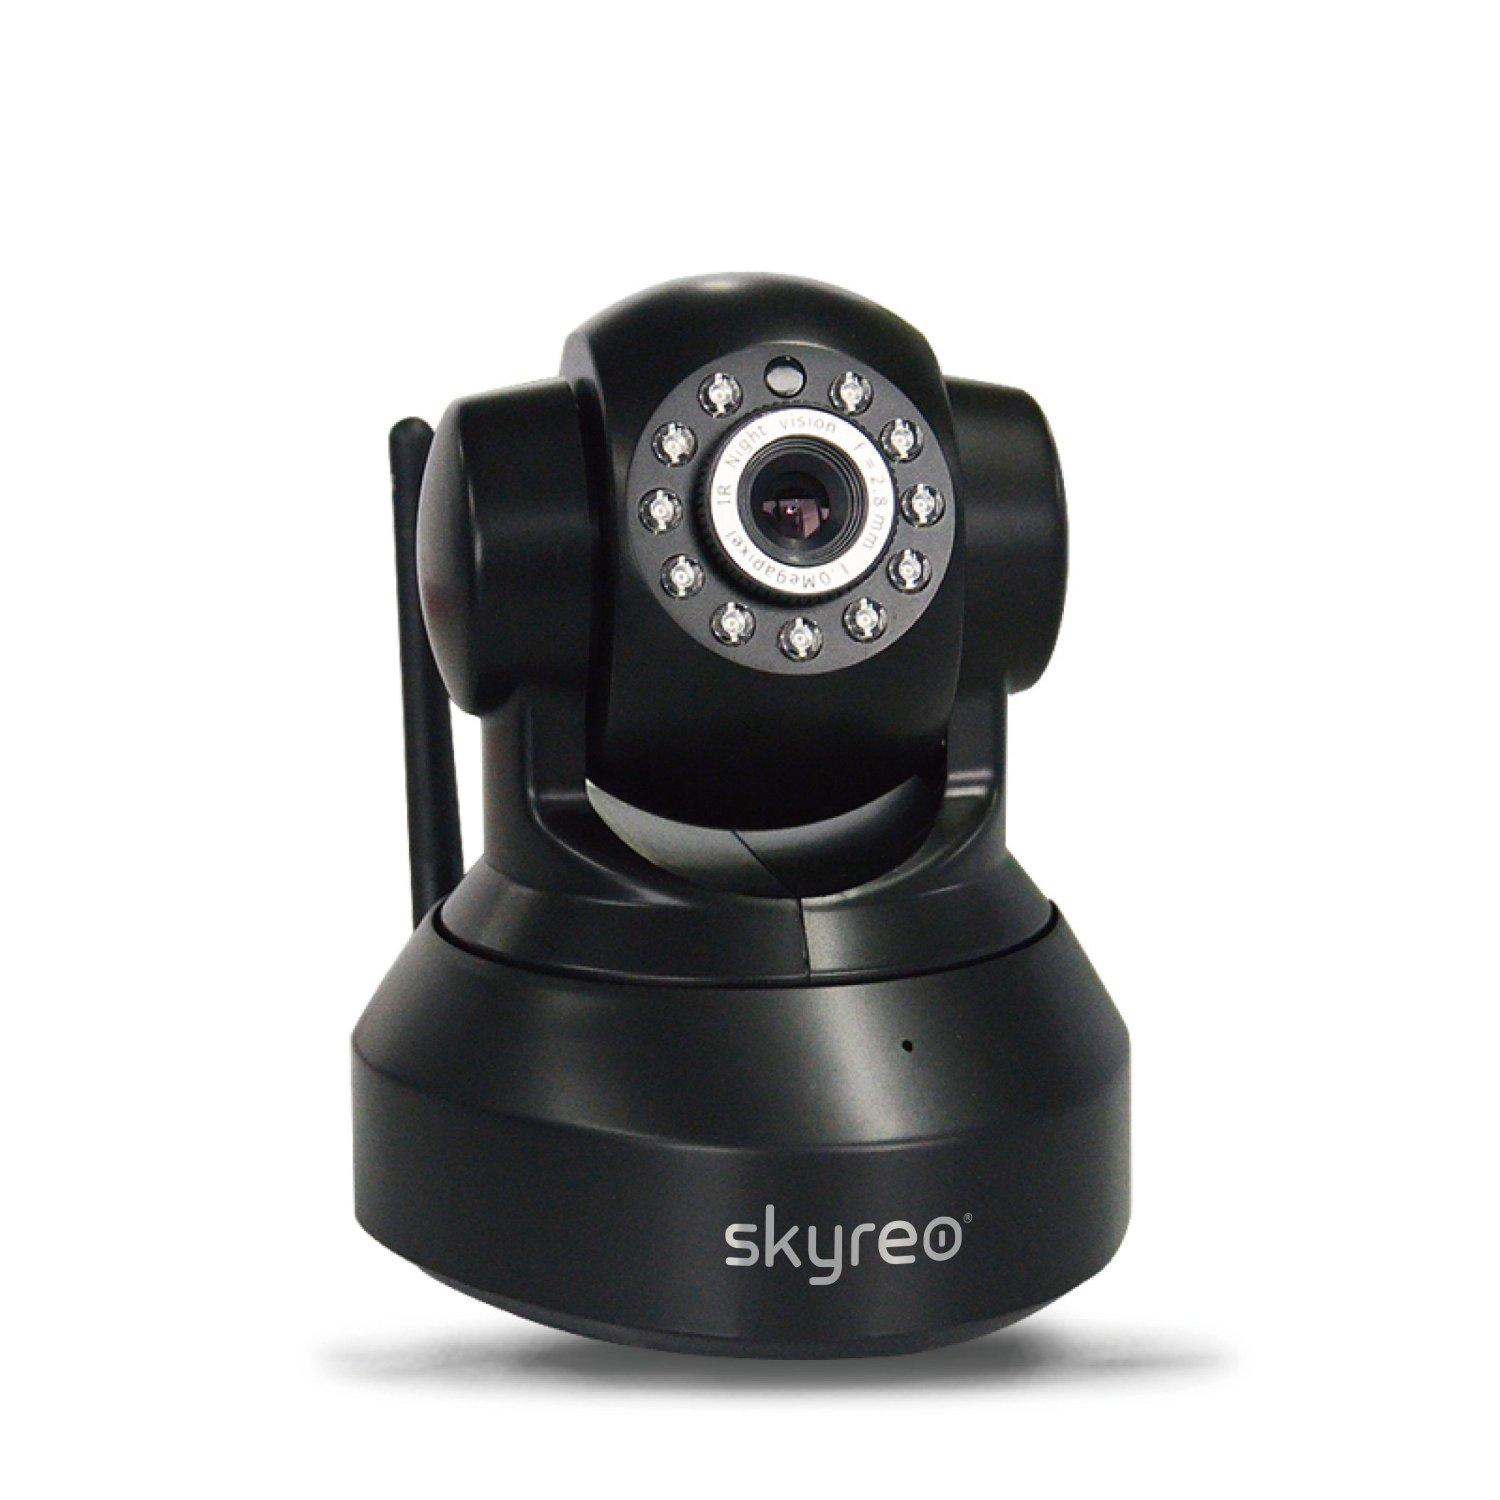 Skyreo SR8918W-BLUS Wireless IP Network Surveillance Camera (Black)